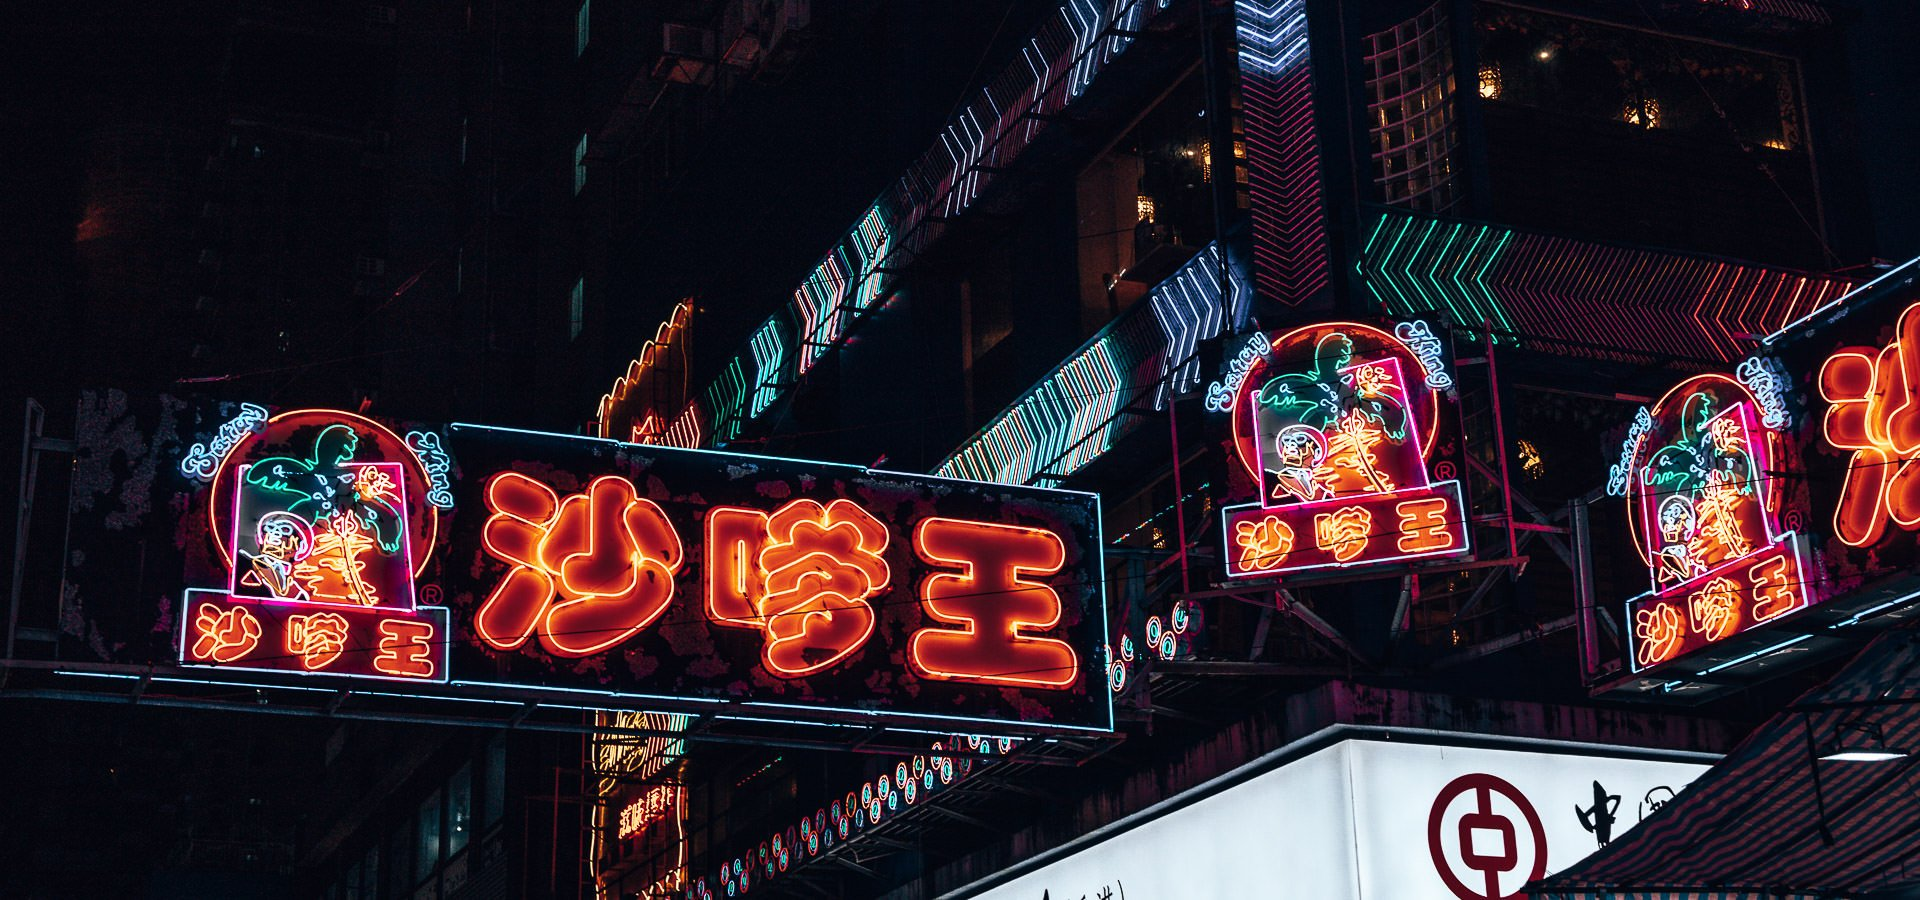 Under Neon Lights In Mong Kok, Hong Kong | neon lights mong kok 14